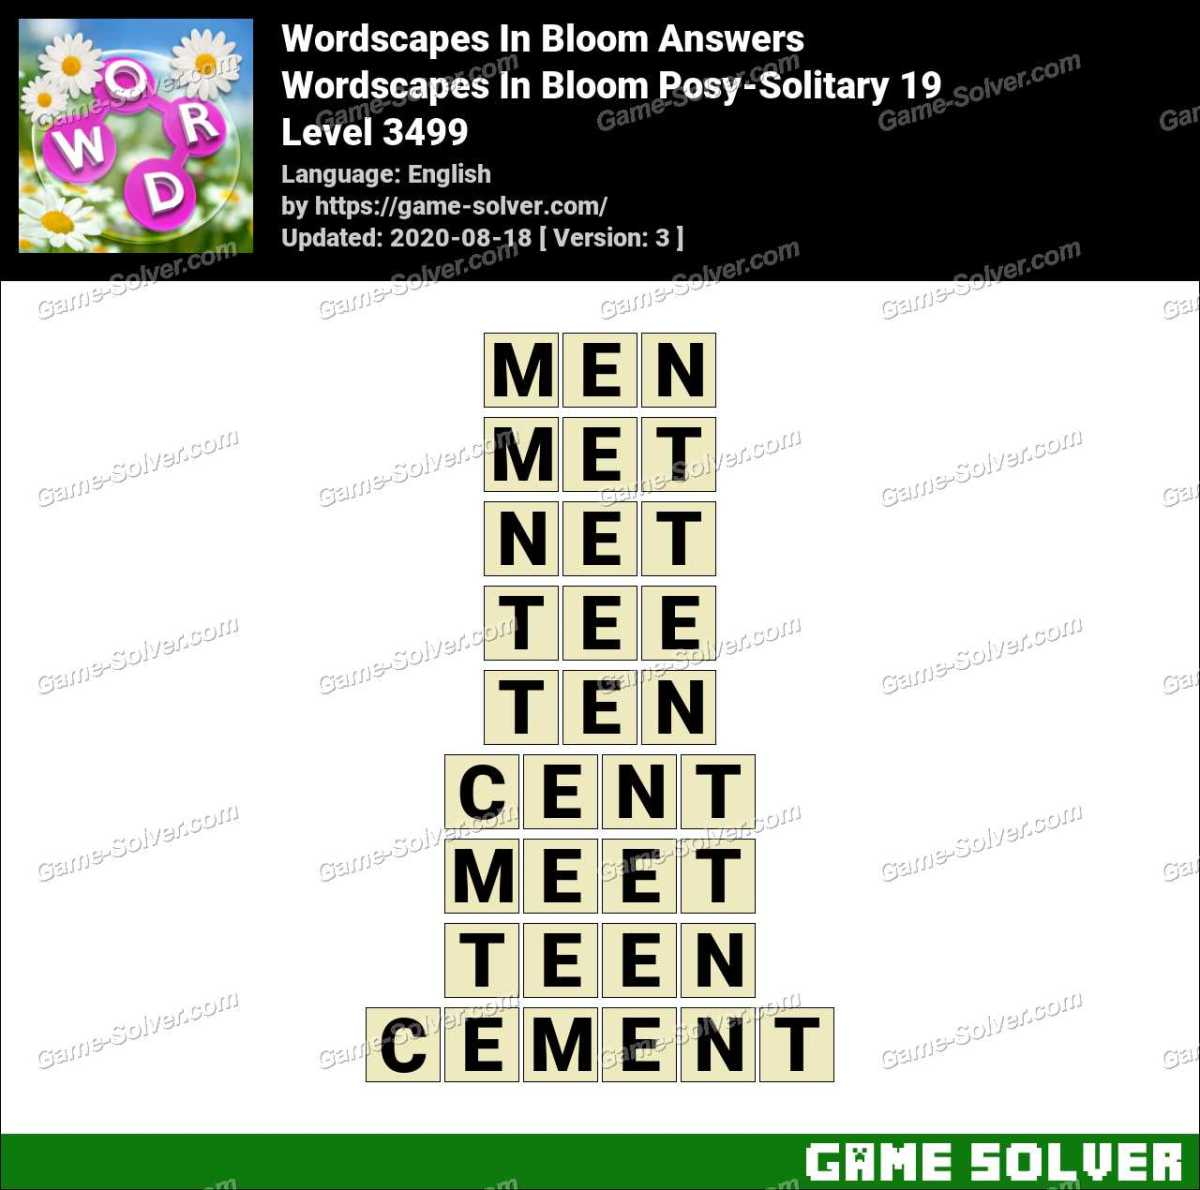 Wordscapes In Bloom Posy-Solitary 19 Answers